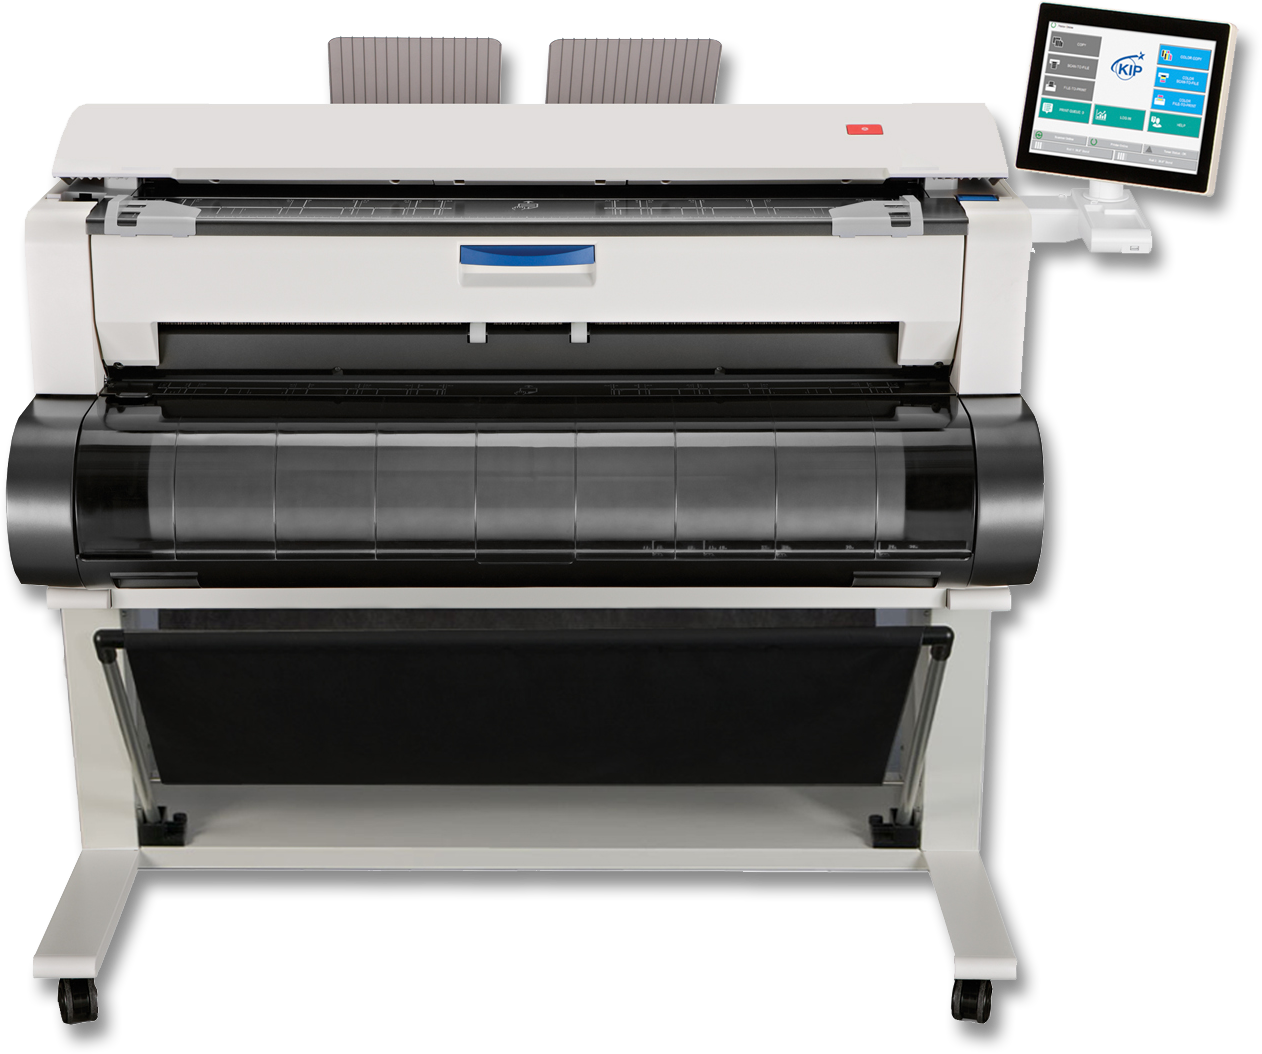 Commercial digital print equipment sales previousnext malvernweather Choice Image